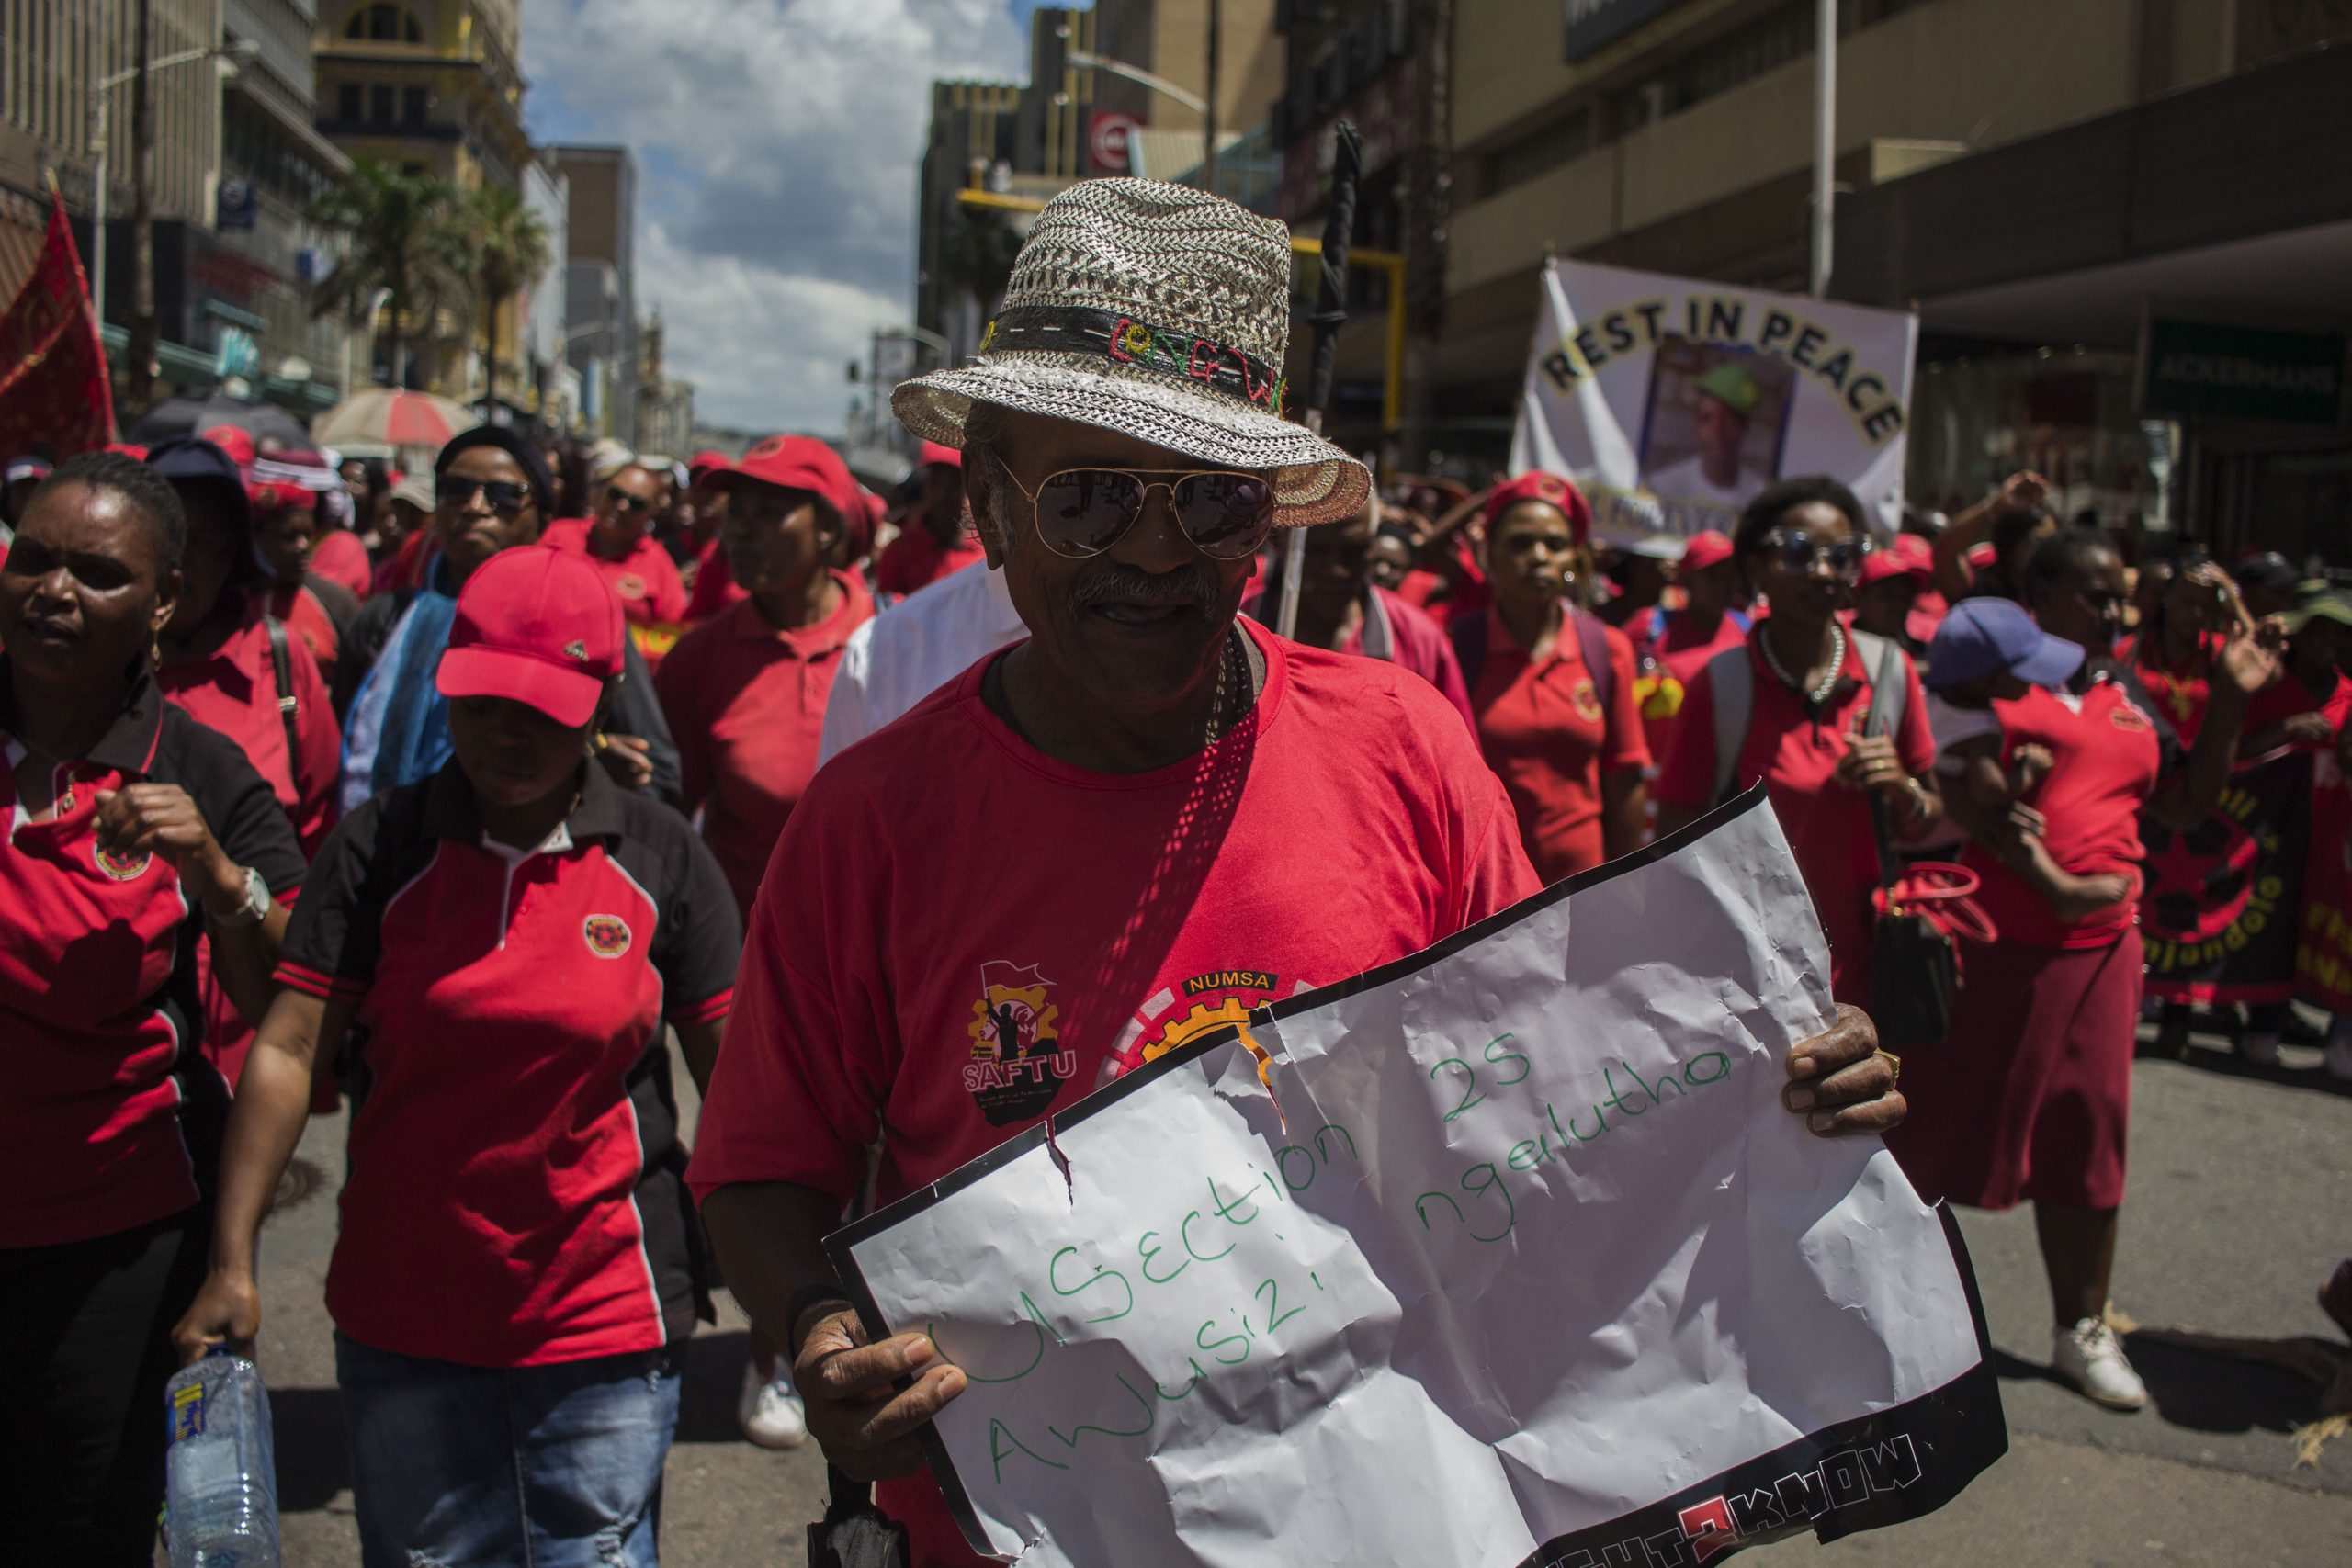 24 February 2020: Members and supporters of Abahlali baseMjondolo came out in large numbers for a march in Durban to air their views on the issue of land expropriation without compensation.